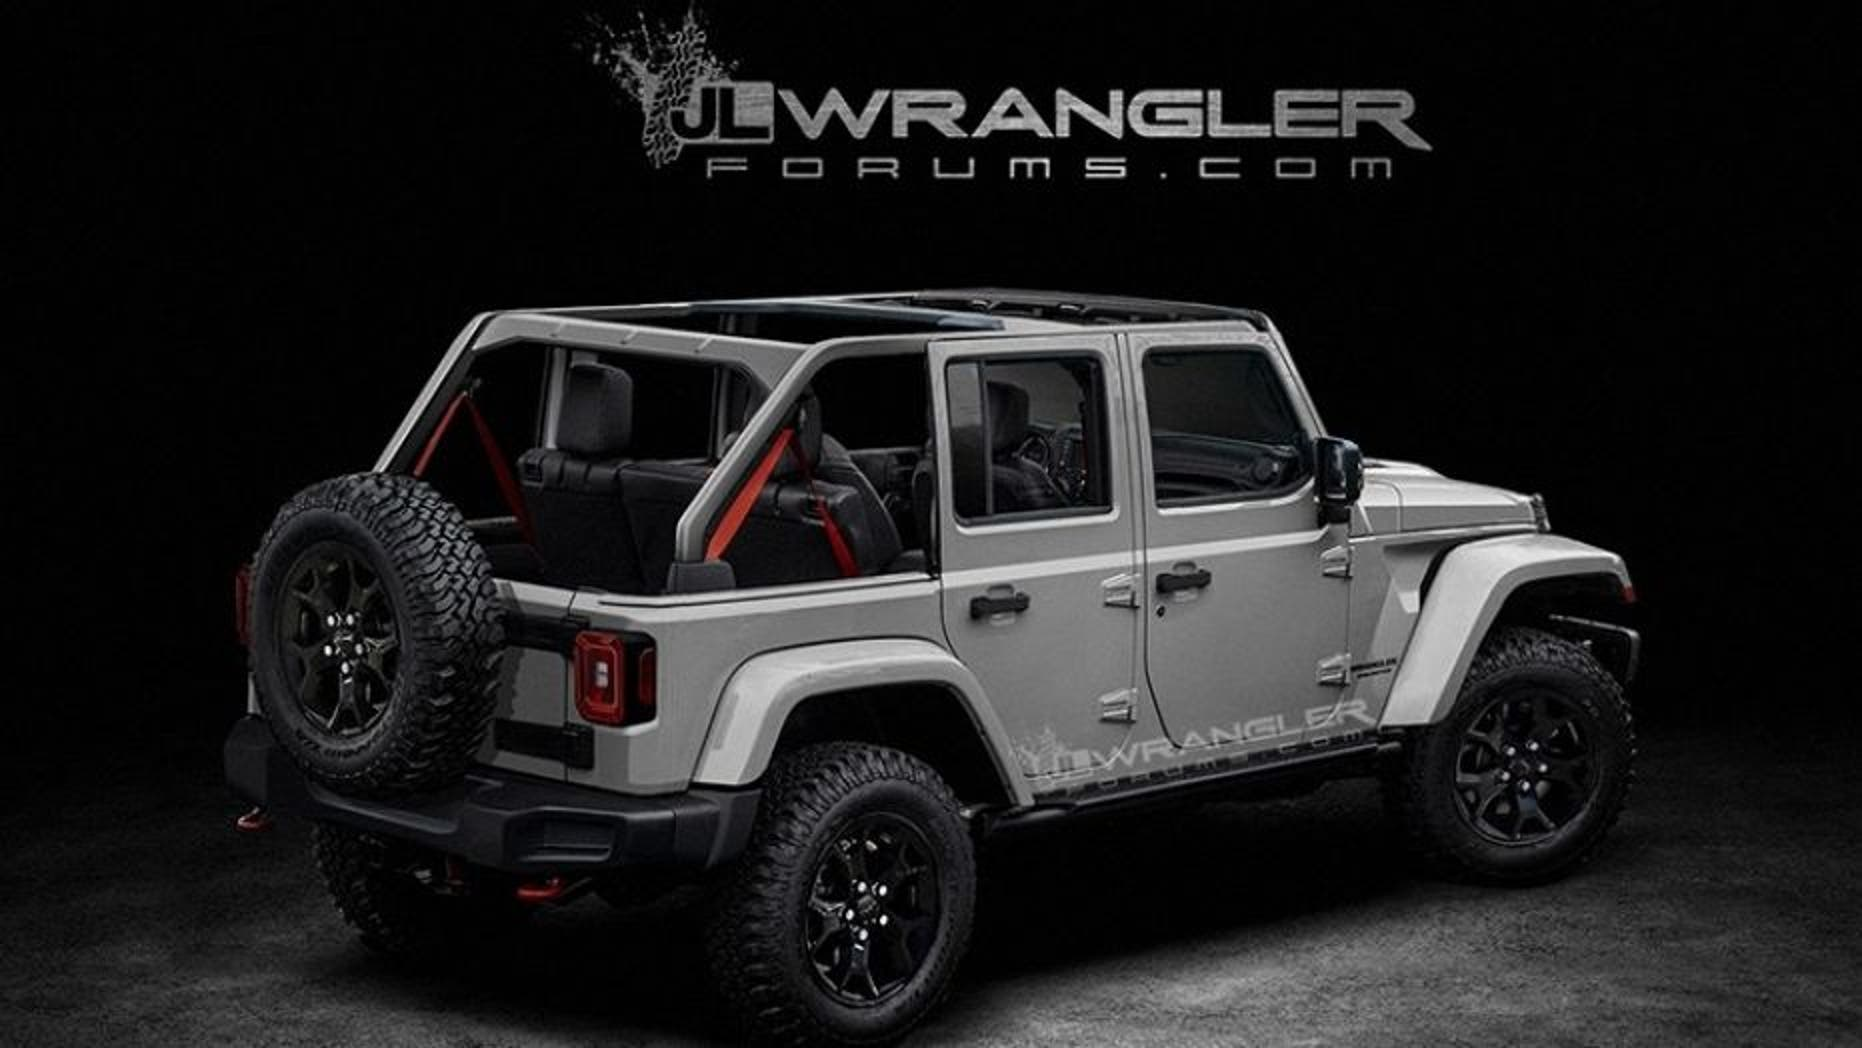 Speculative rendering of the new Jeep Wrangler